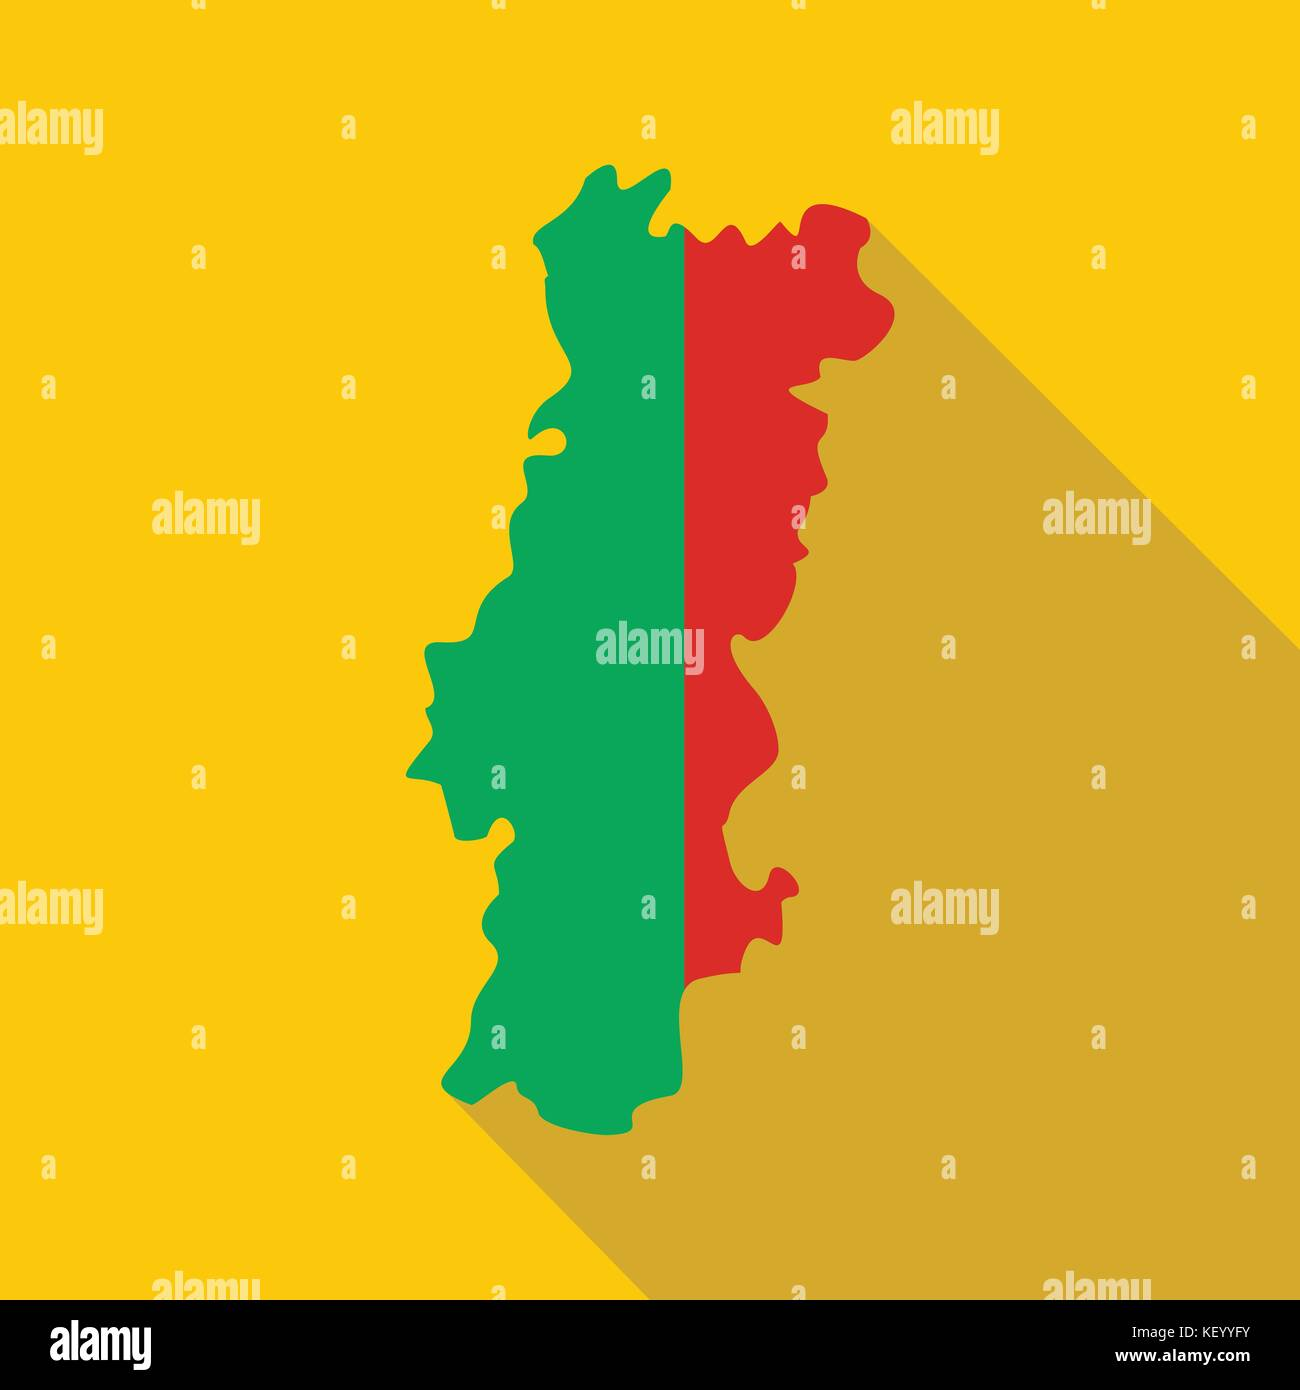 Portugal Map Stock Photos Portugal Map Stock Images Alamy - Portugal map icon